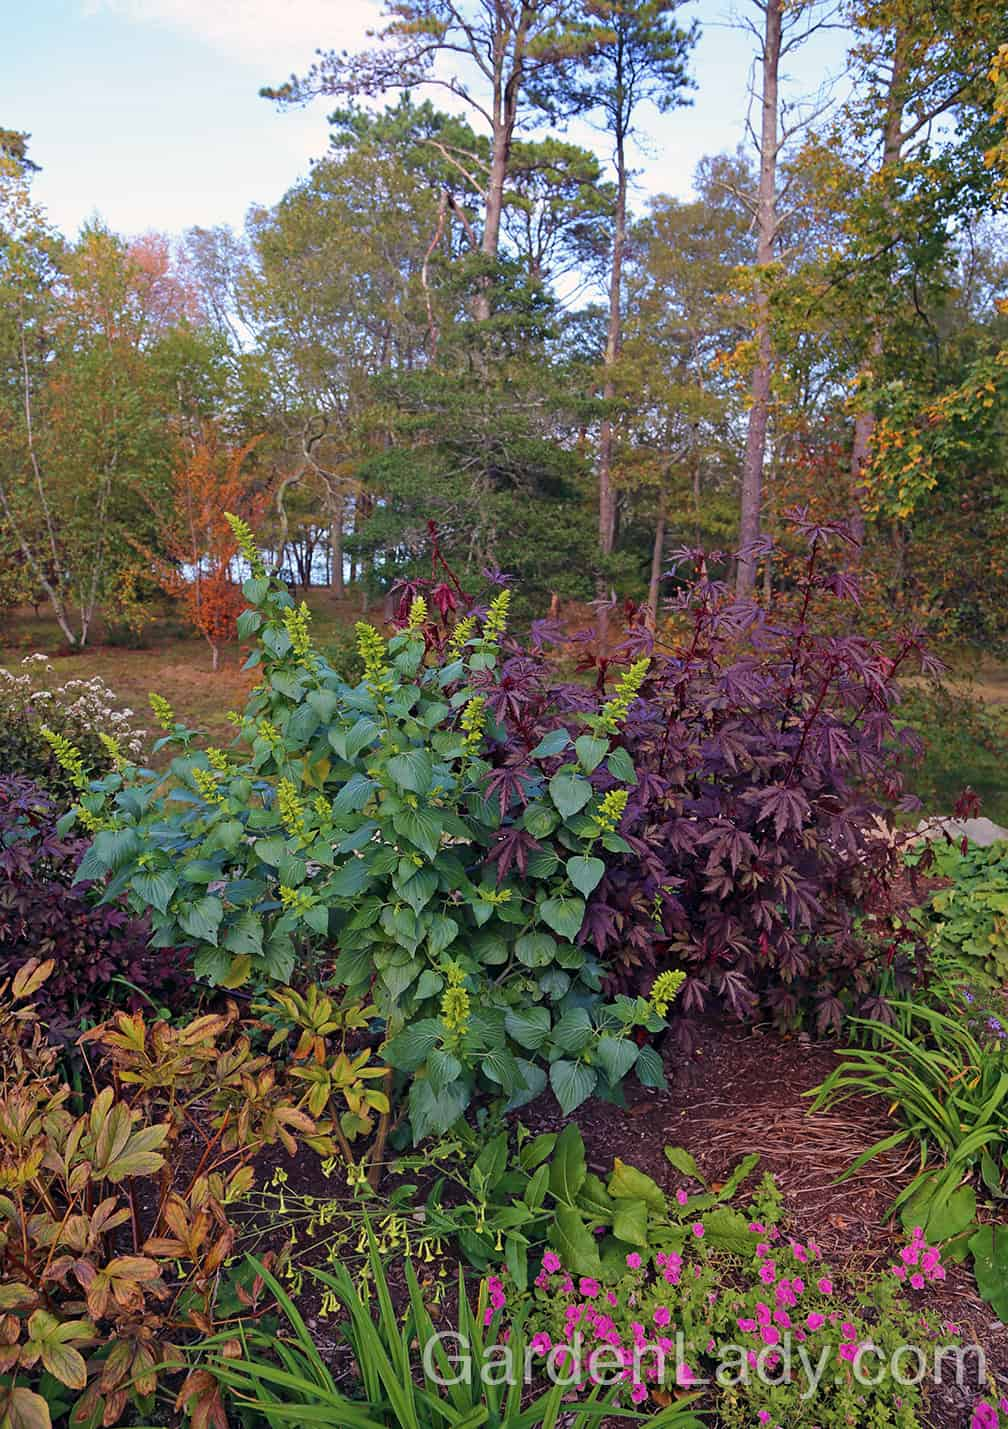 Other annuals for cold-climate fall gardens are Salvia mexicana 'Limelight' and Hibiscus acetosella. The salvia starts to become showy as the lime-green bracts form, soon to be ornamented with bright blue flowers. When this plant is placed next to the burgundy-leaved Hibiscus acetosella, you have an eye-catching combination.